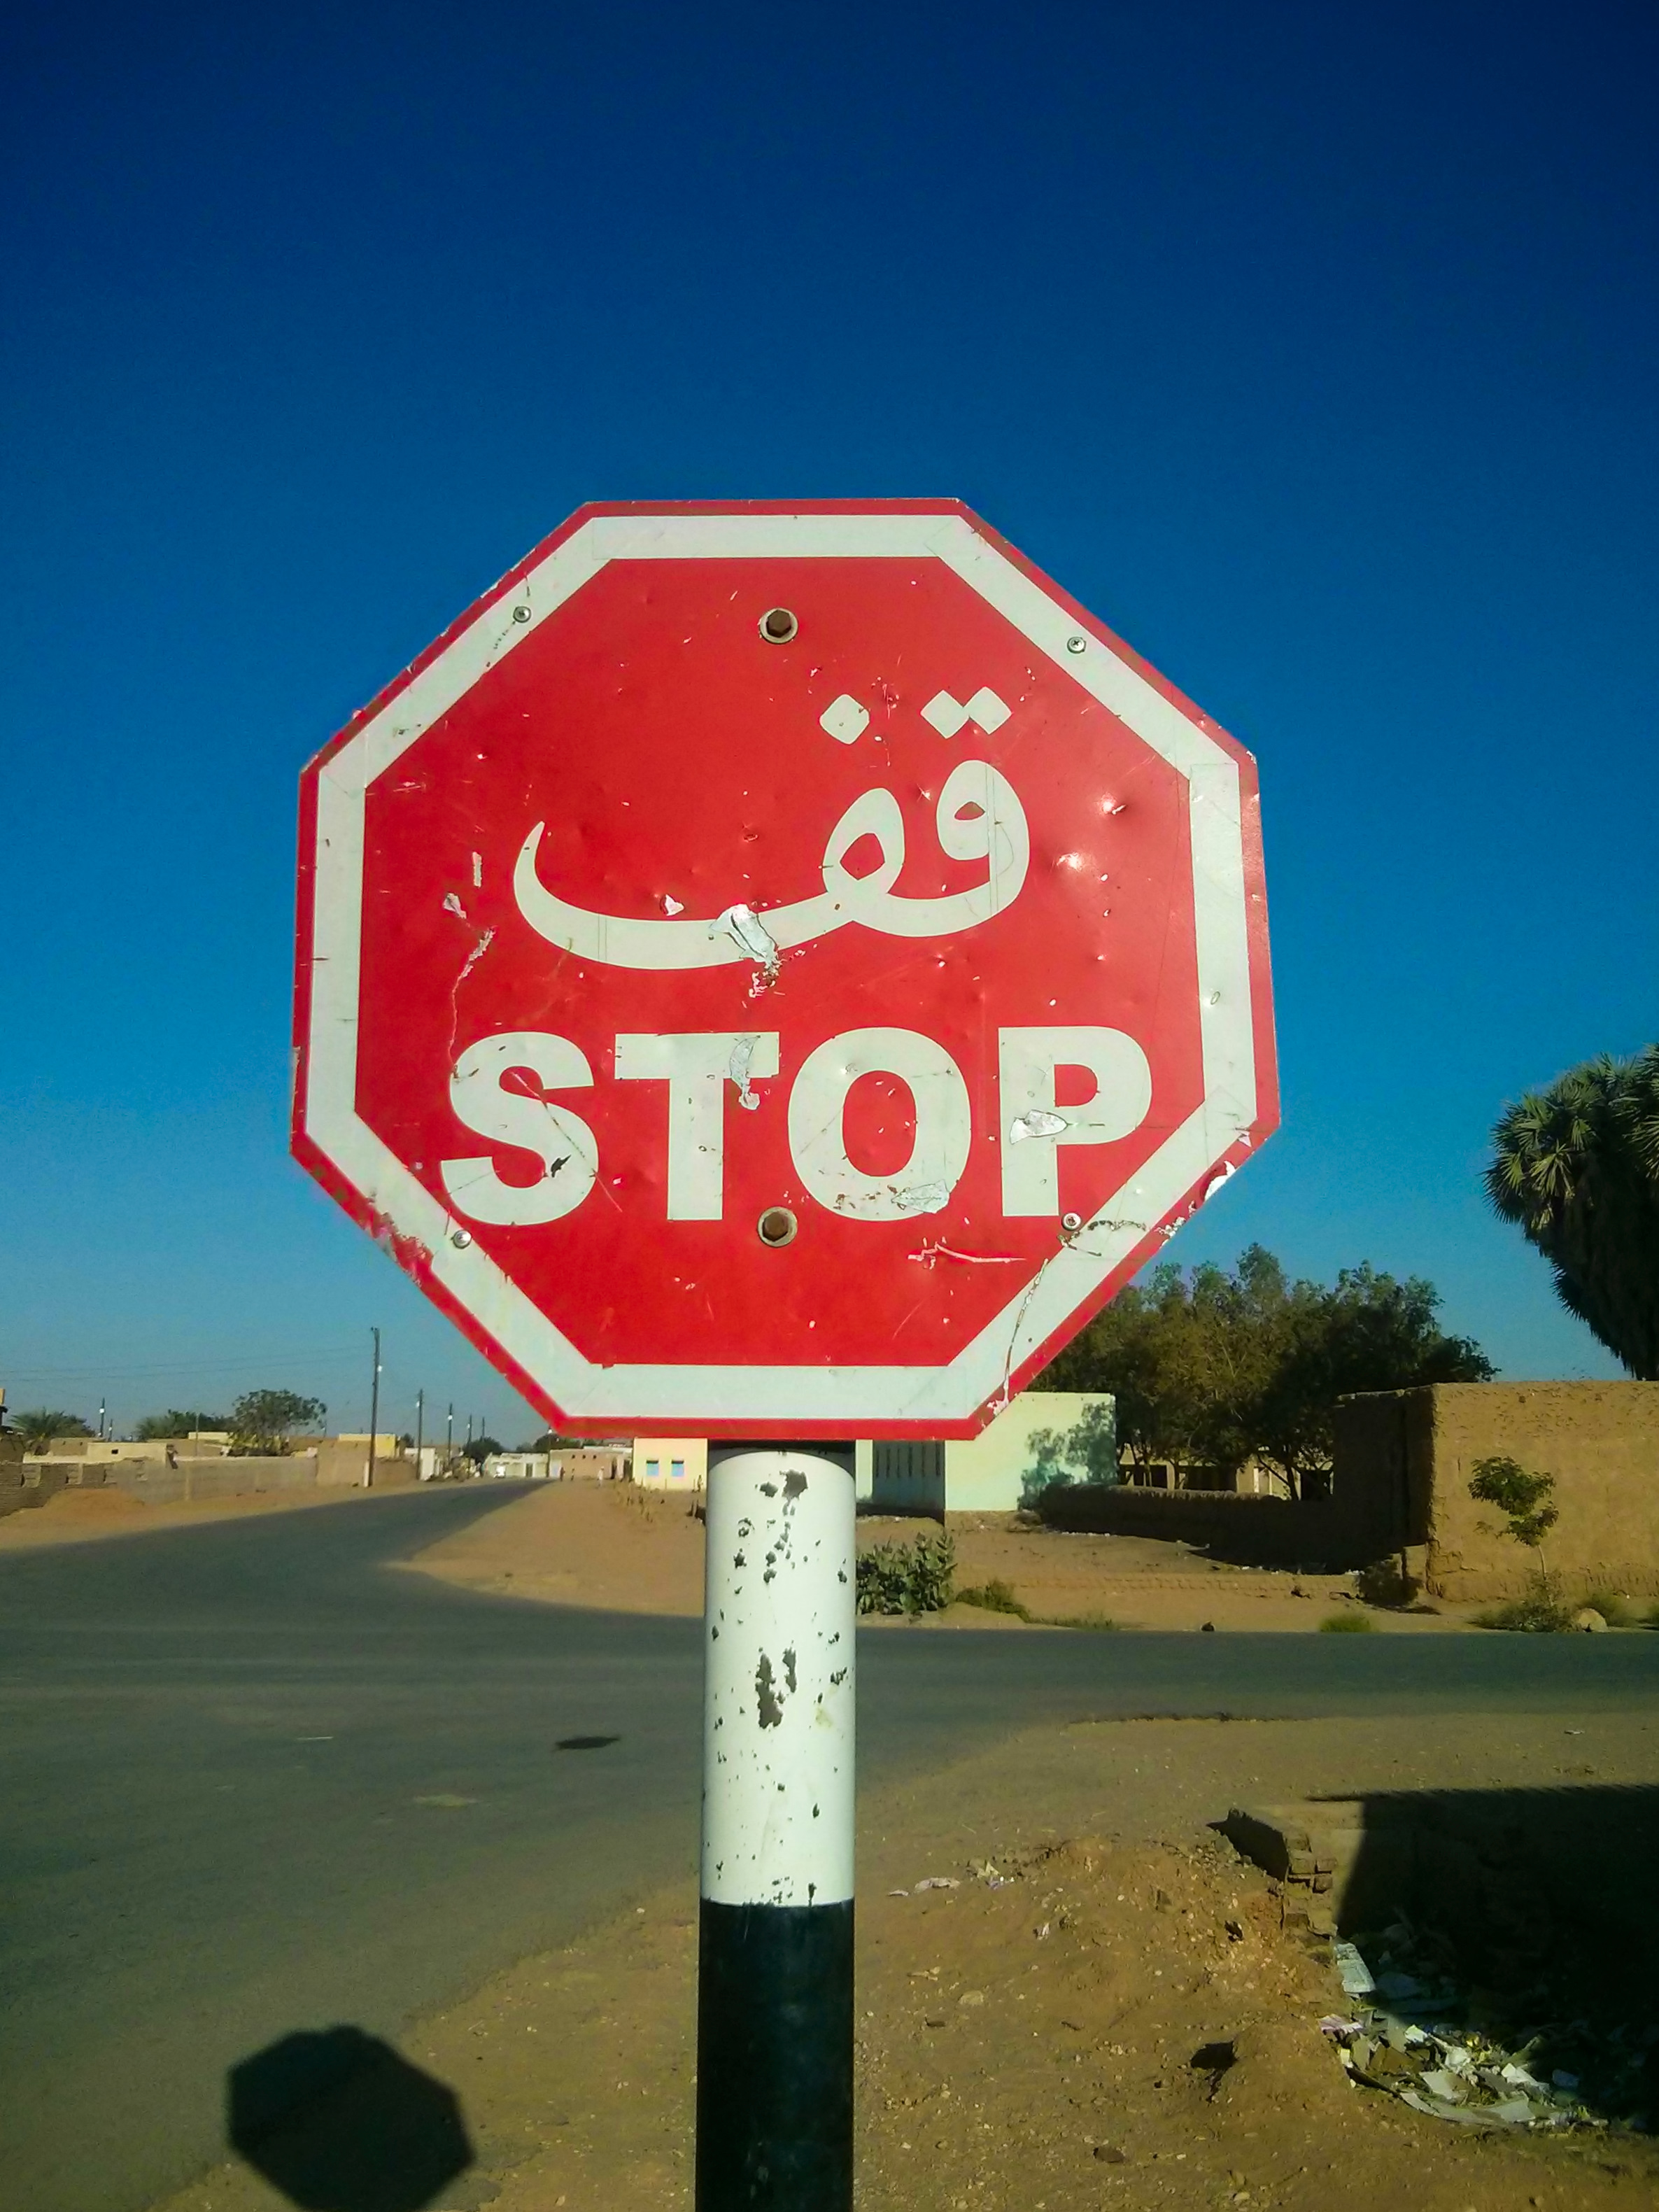 Stop! You've just entered Sudan...